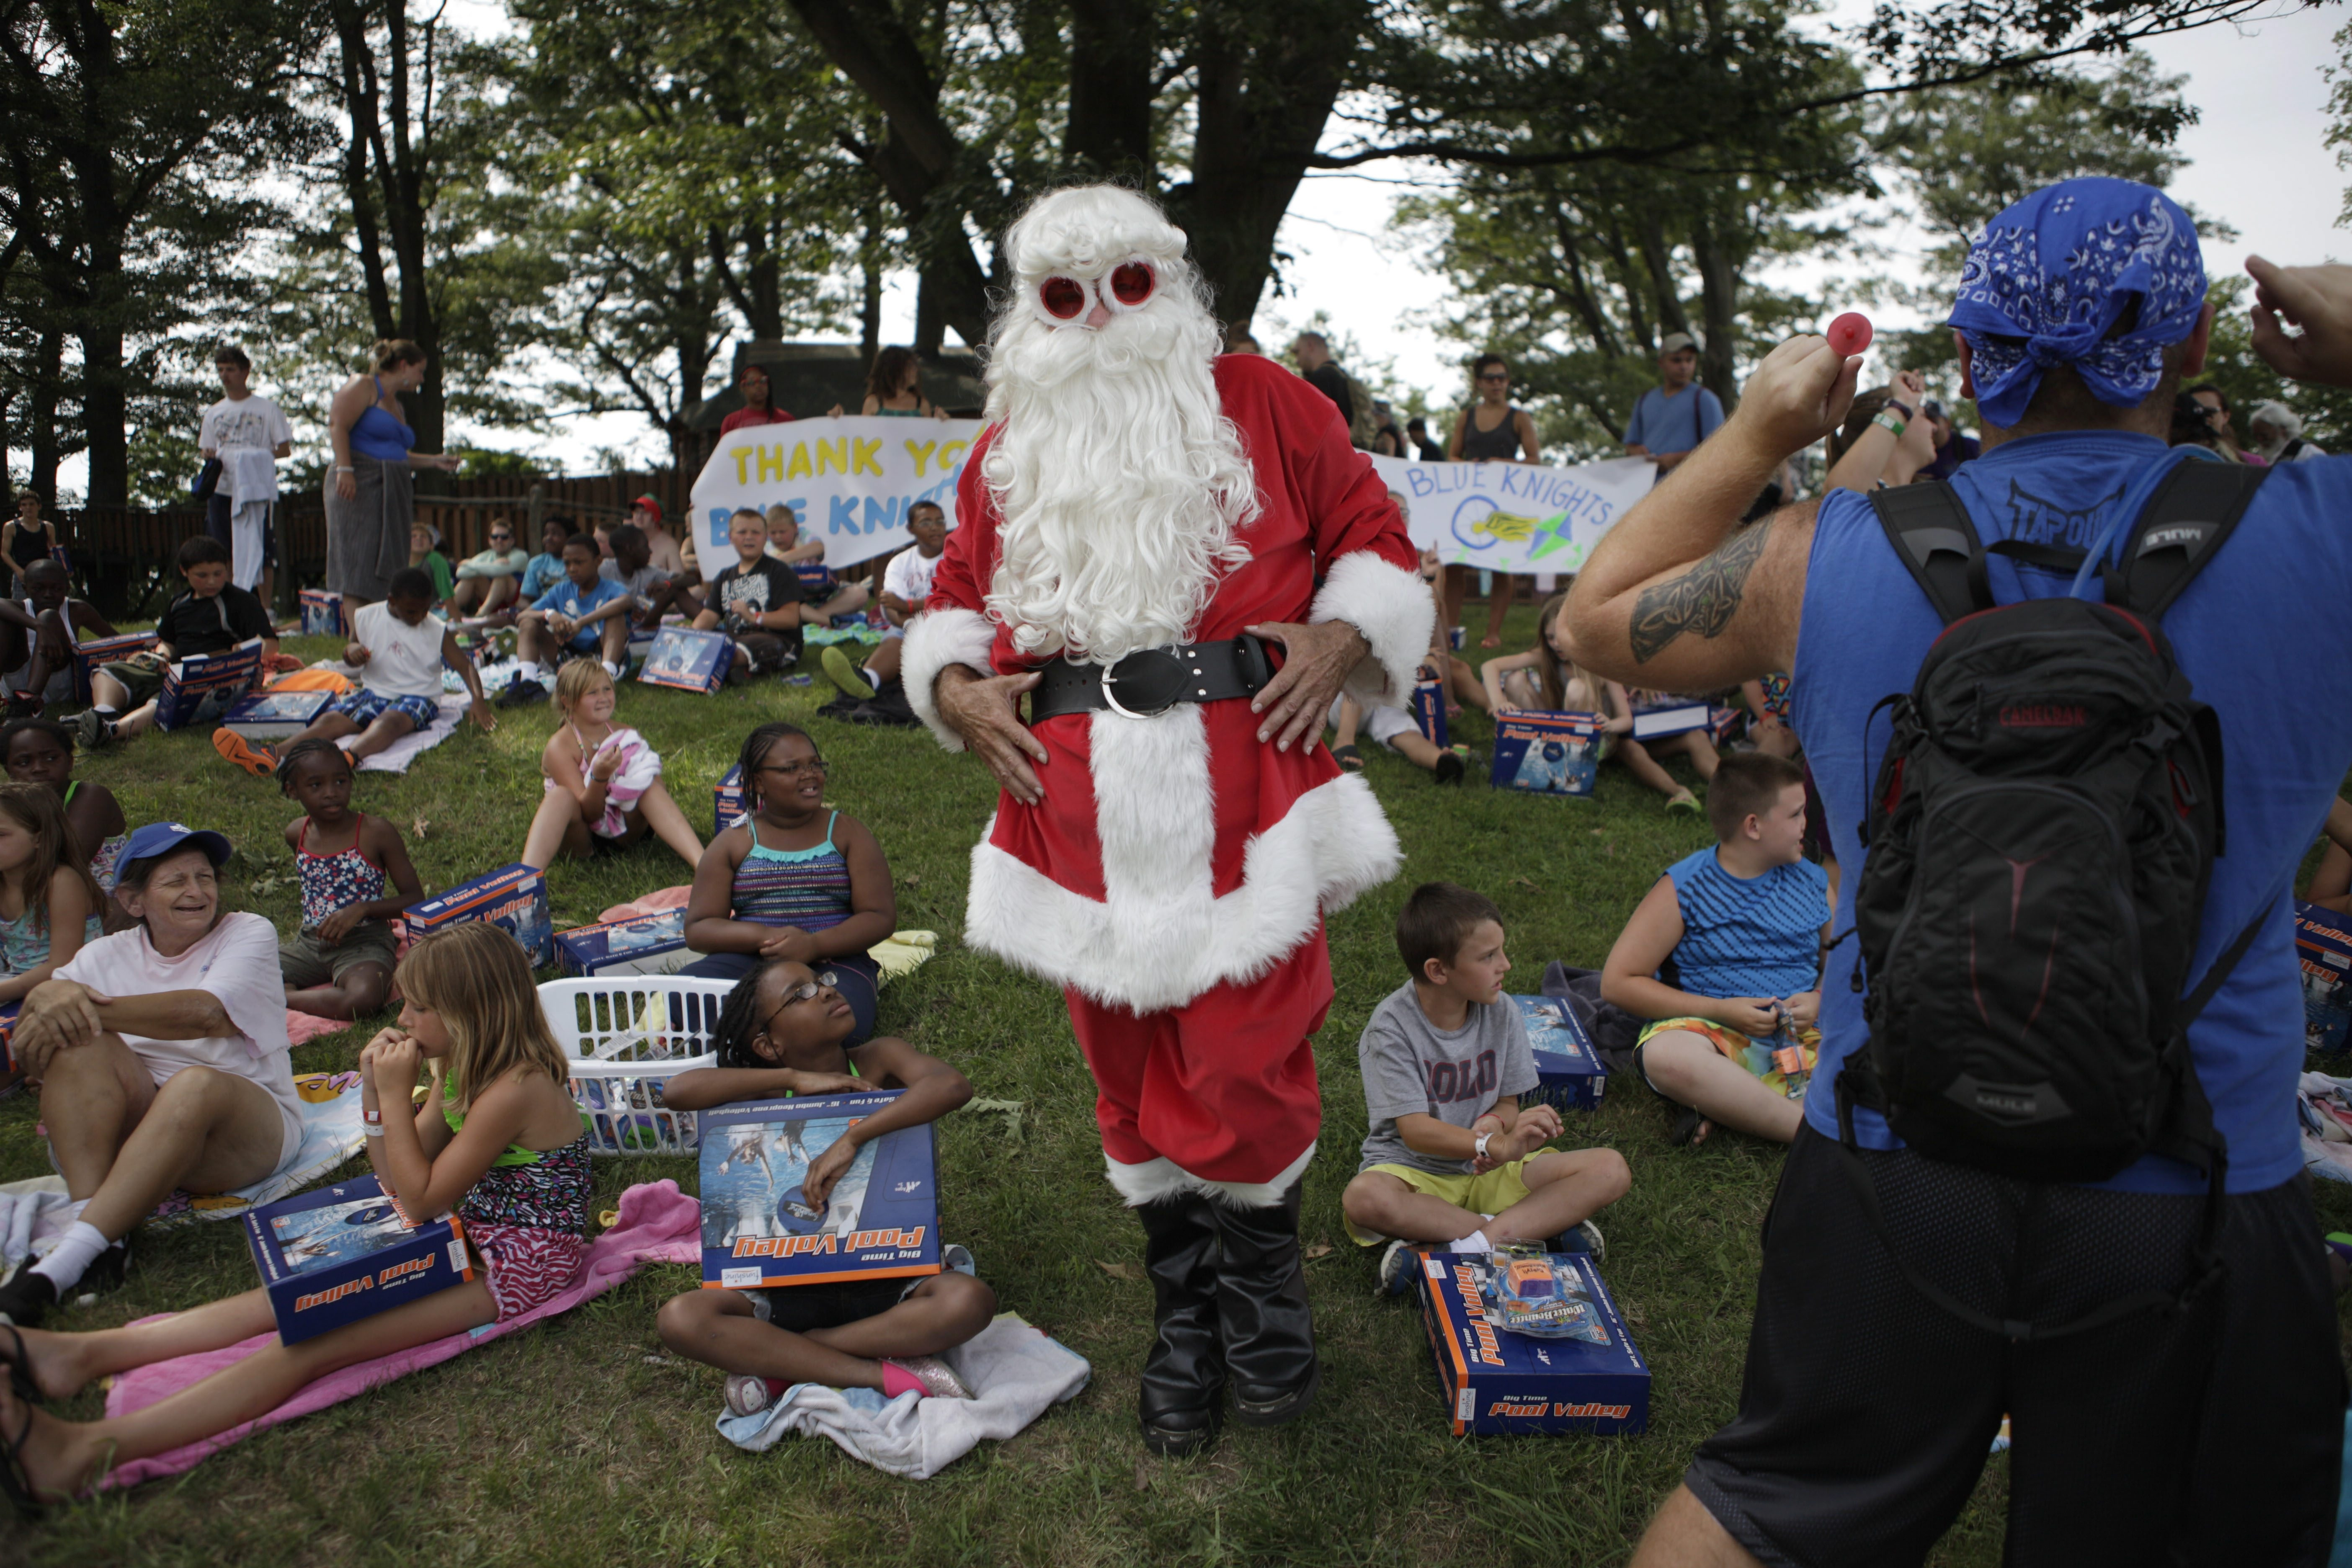 Santa Claus finishes passing out presents during a Christmas in July celebration Sunday at Cradle Beach in Angola. Below, the Blue Knights motorcycle club arrives at camp to deliver presents, to the delight of the young campers.